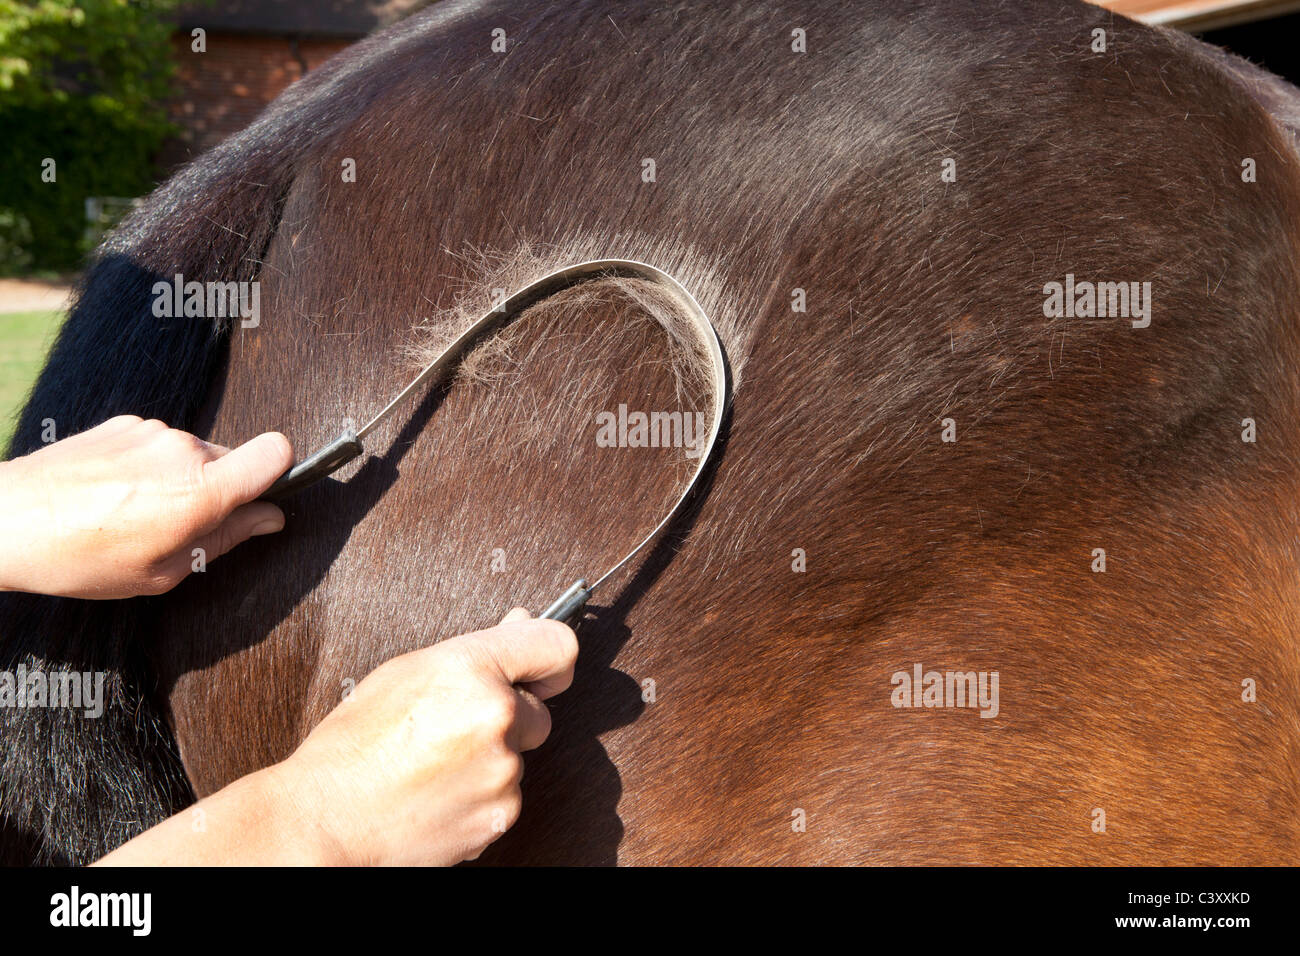 Using a metal scraper to remove hair from a moulting horse in spring - Stock Image